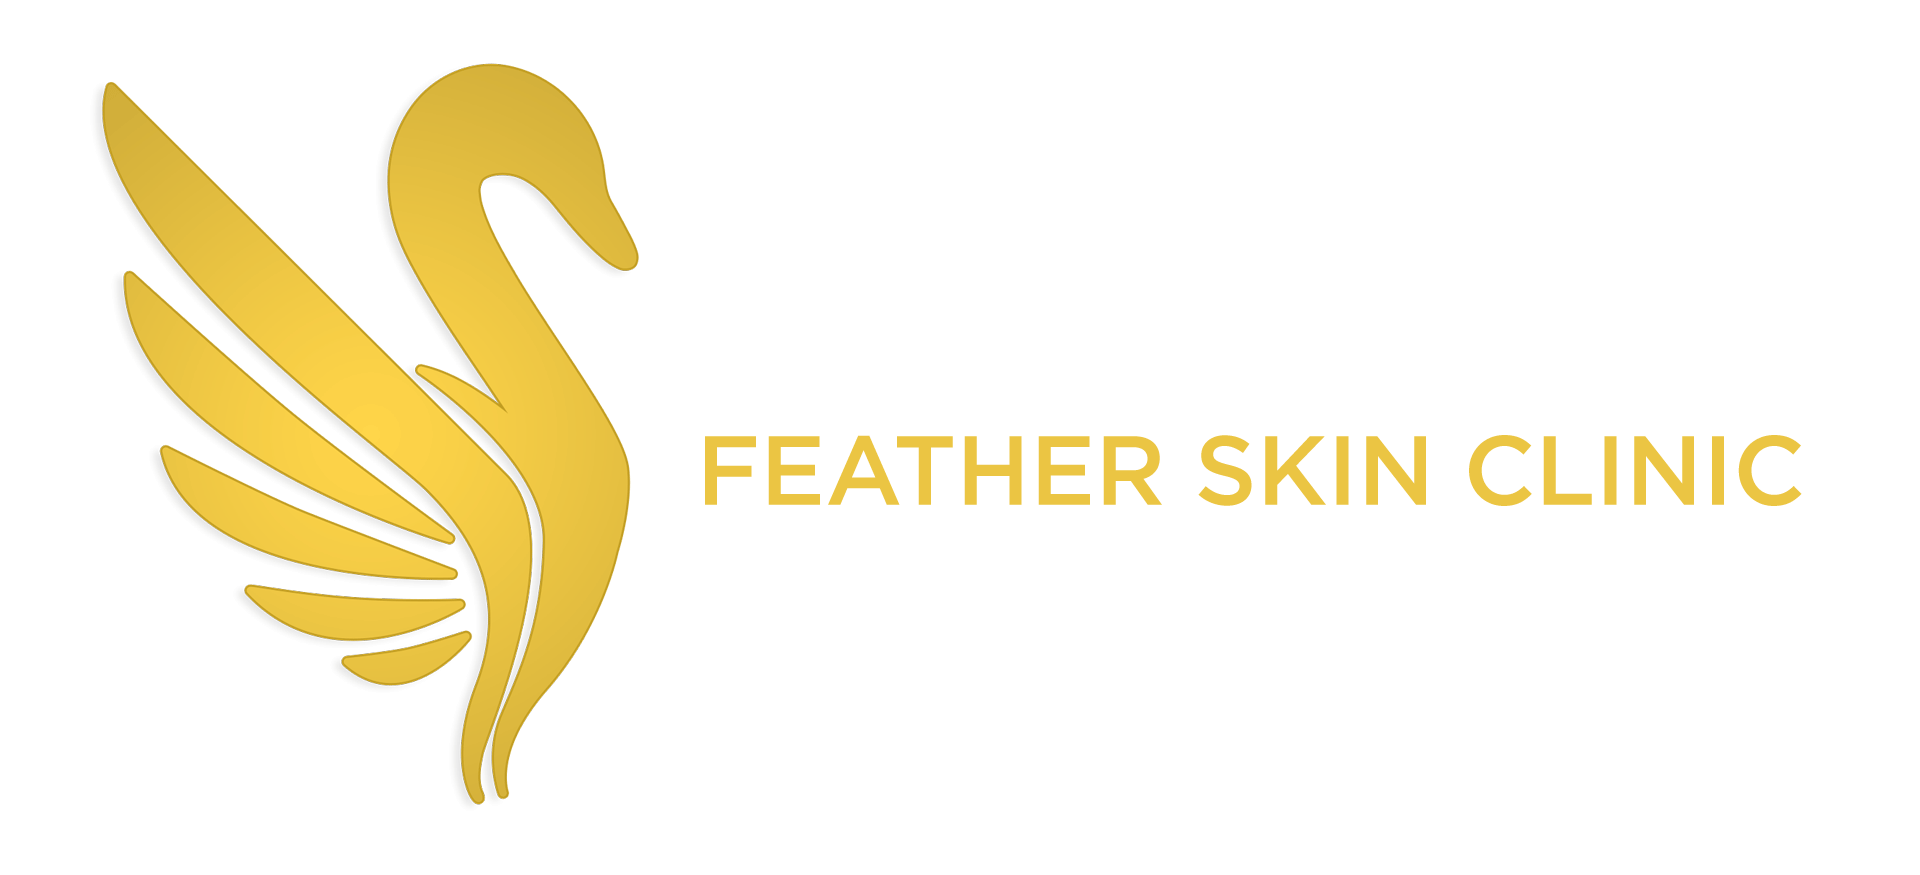 Feather Skin Clinic Mobile Retina Logo